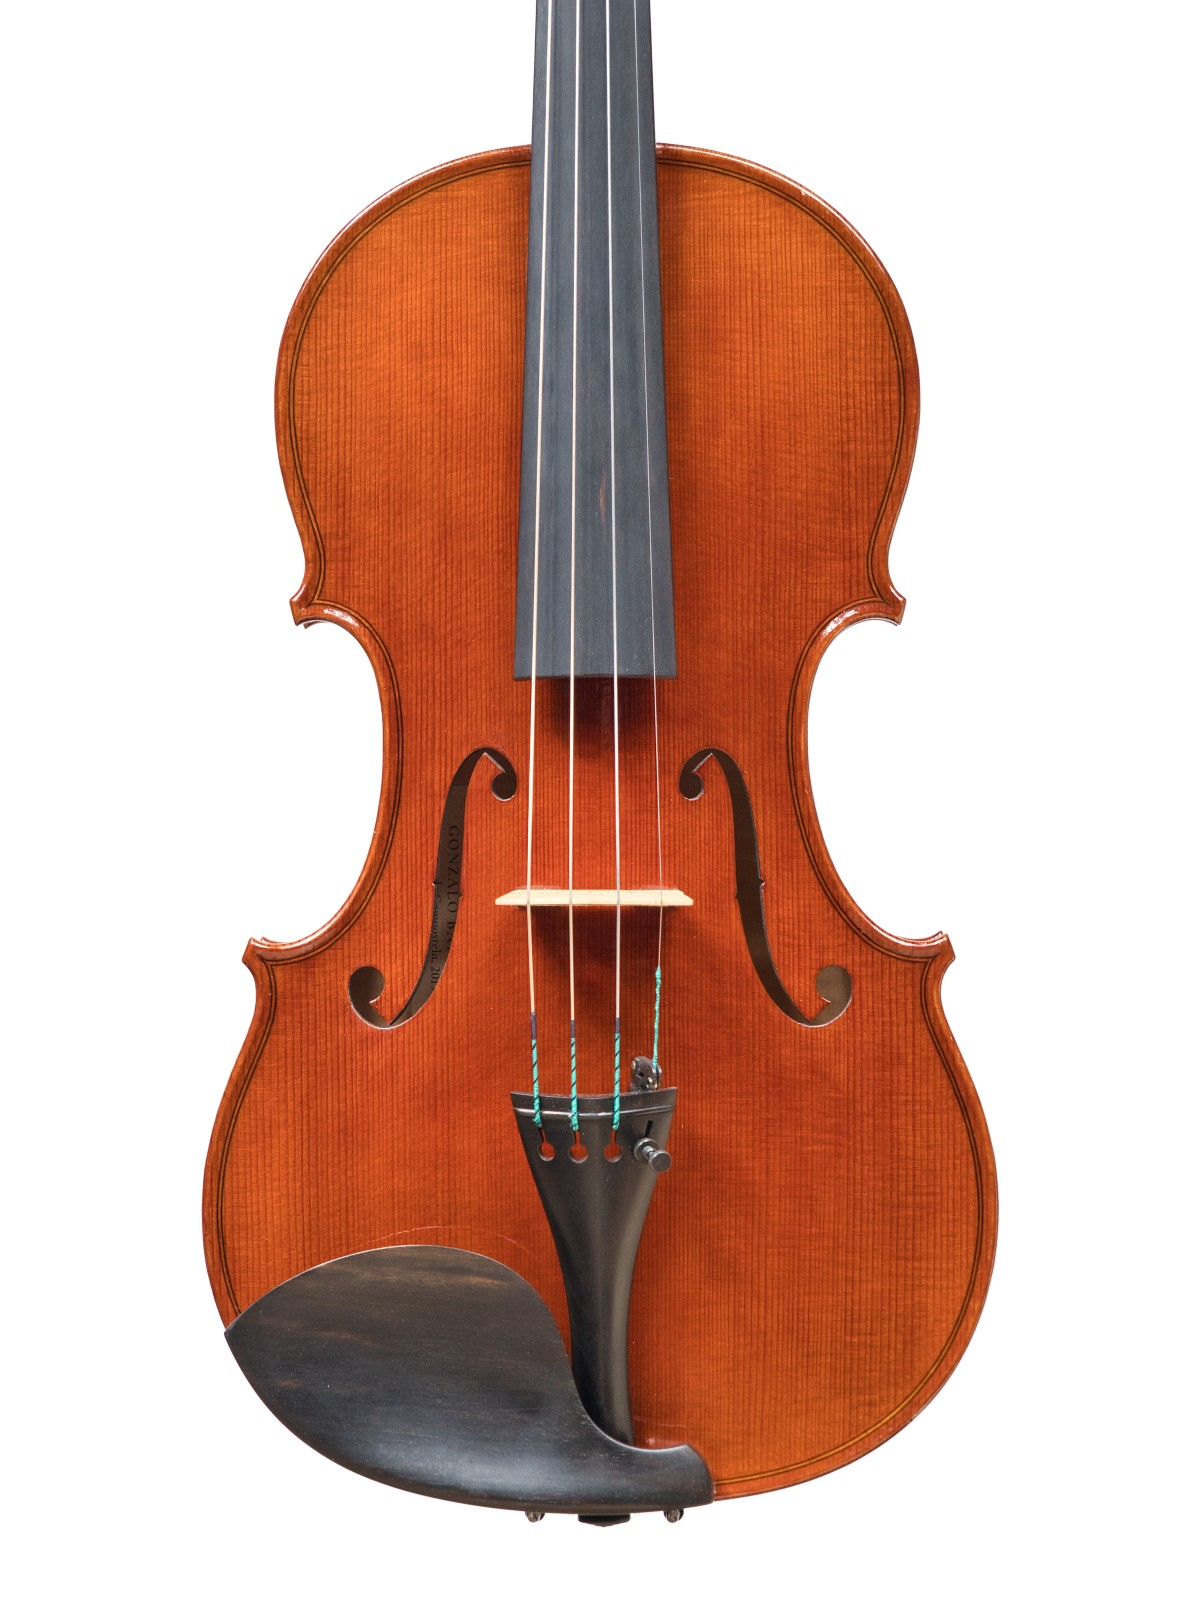 Violin by Gonzalo Bayolo 2019